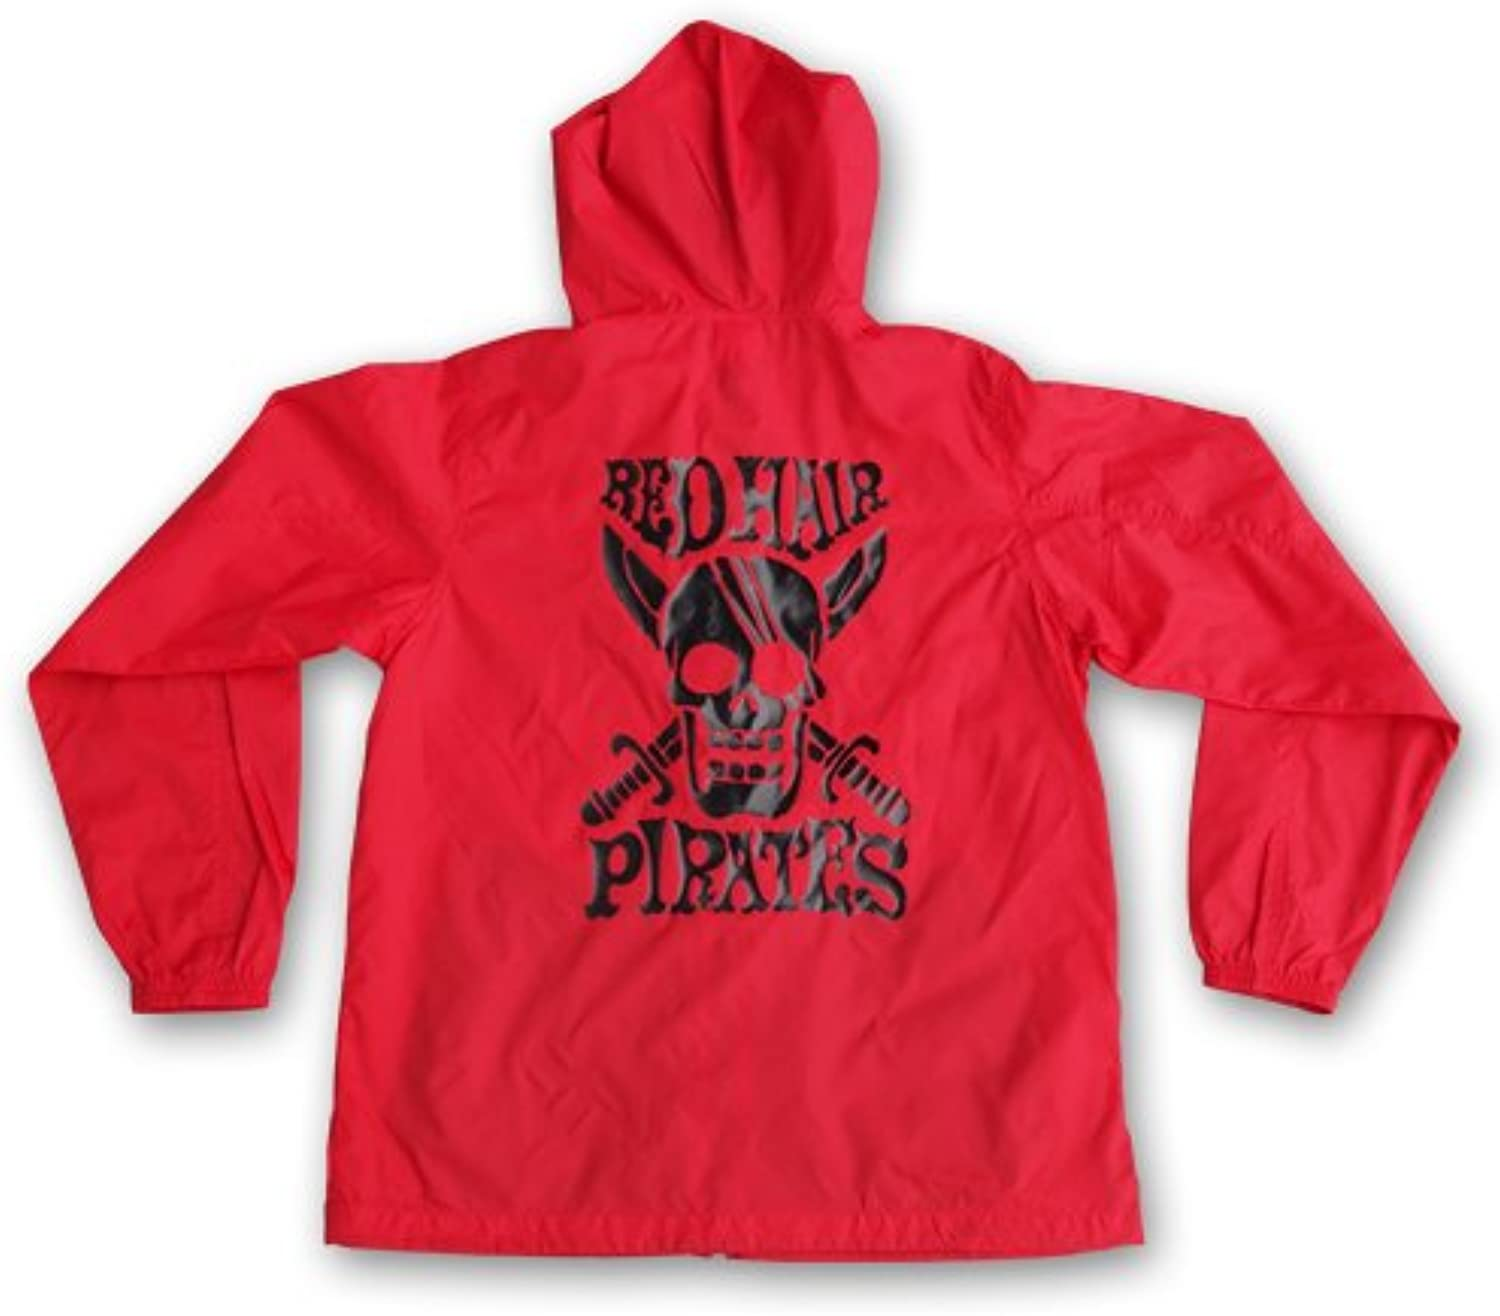 One Piece Red Hair Pirates Windbreaker Red x navy Size  S (japan import)